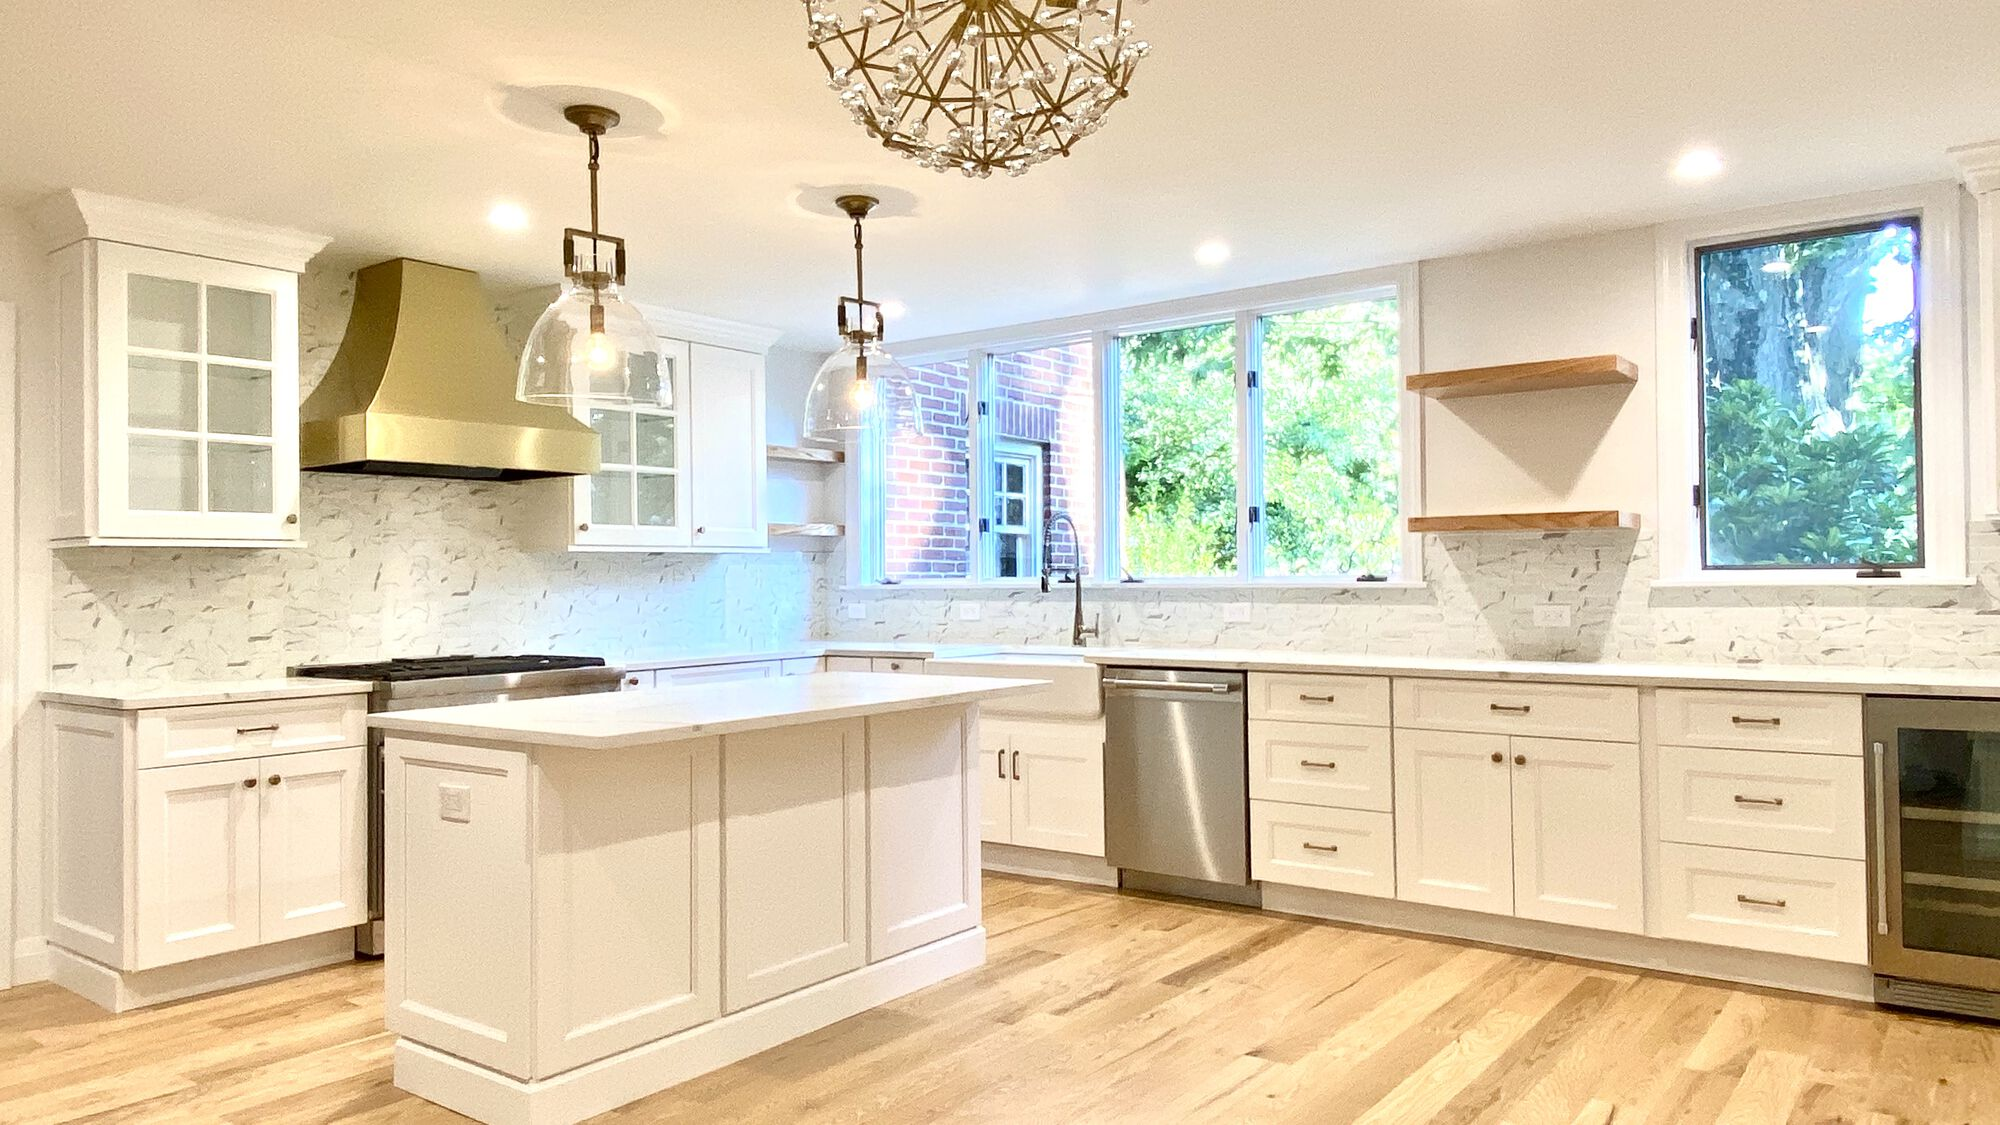 Modern Kitchen with Shaker Style Wood Cabinets, Open Shelving Brass Hood, Wood Floors, Thermador Appliances in West Orange, Essex County NJ